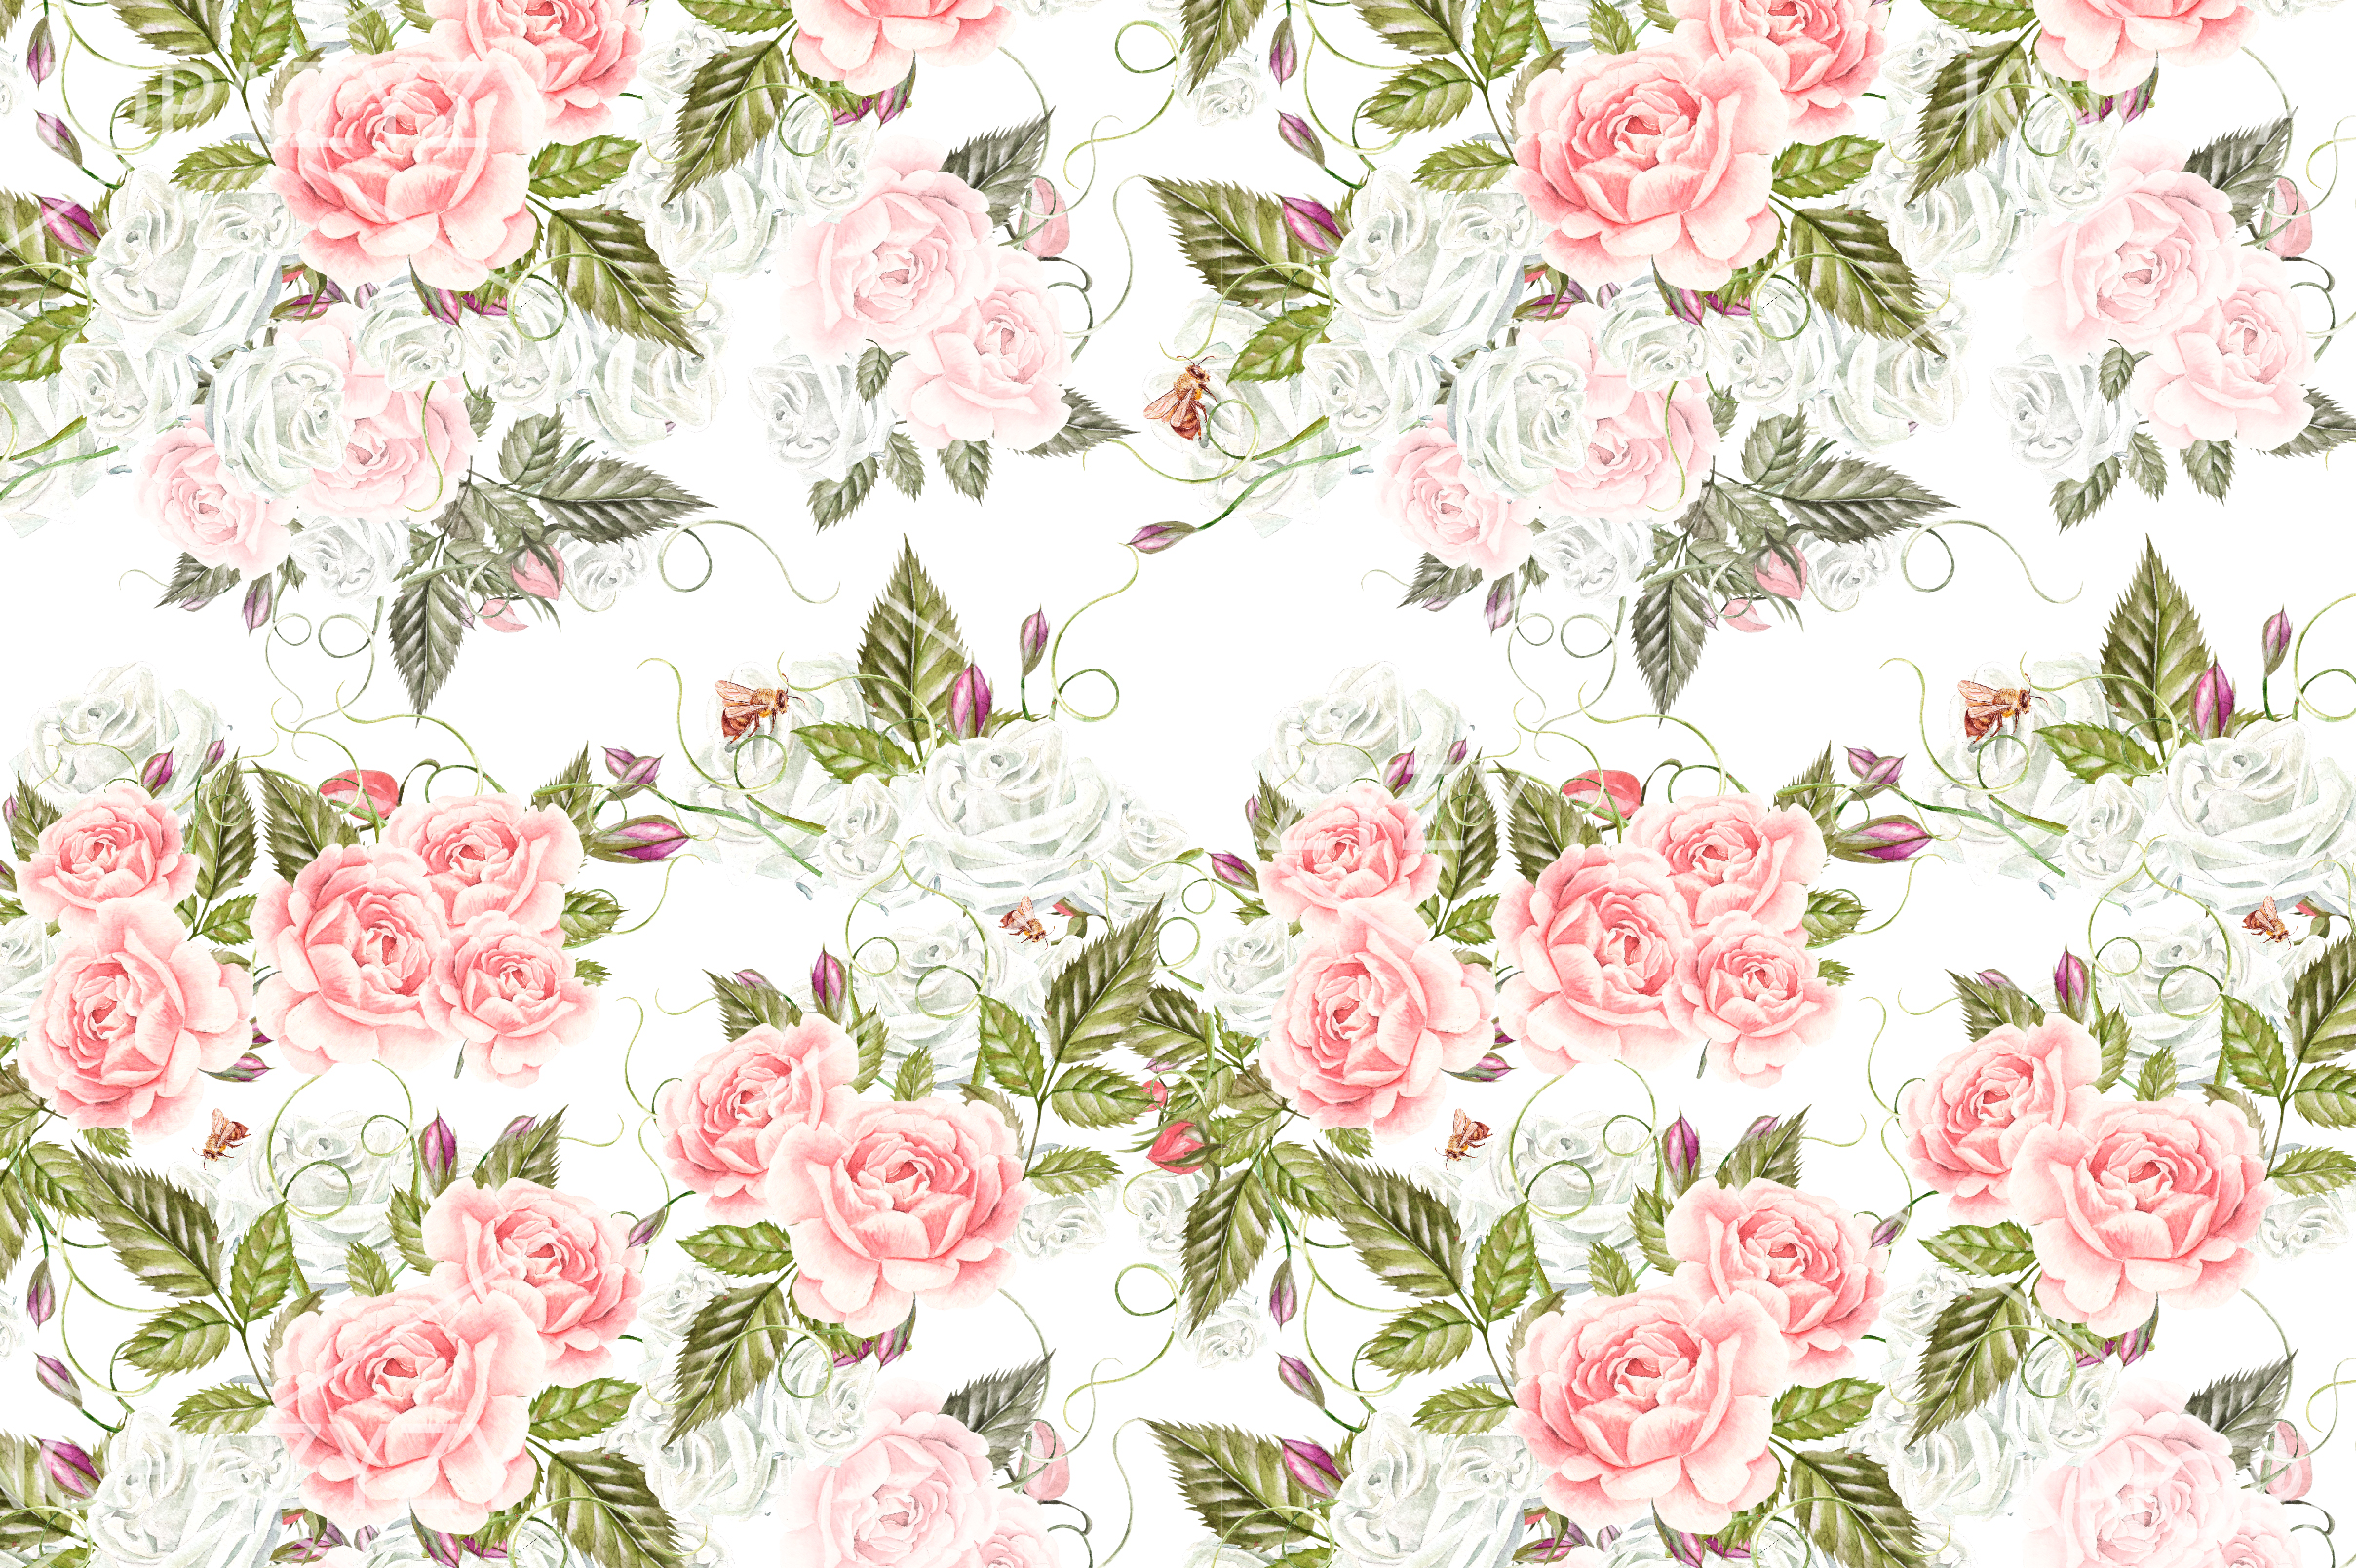 15 Hand Drawn Watercolor PATTERNS example image 14